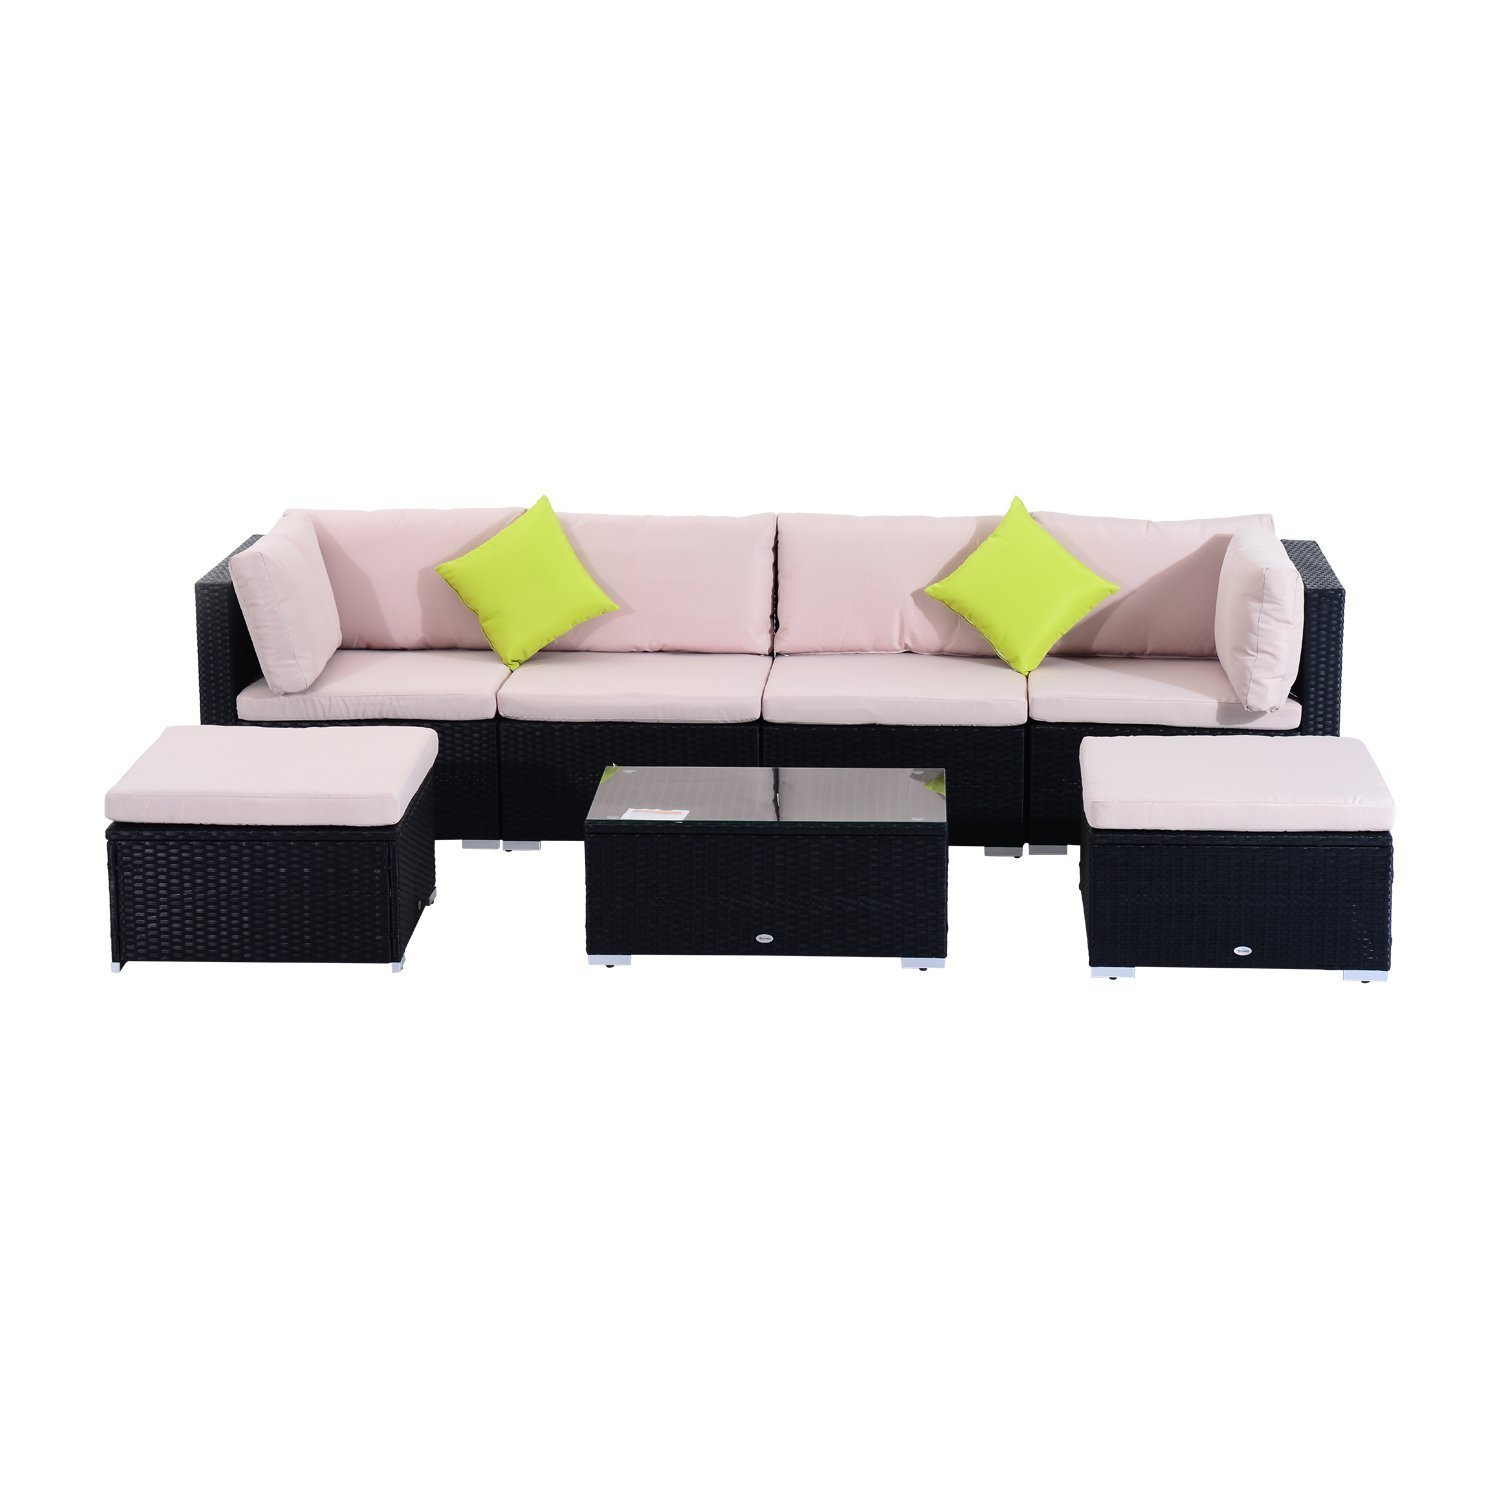 outsunny polyrattan gartenm bel 21tlg rattan gartenset. Black Bedroom Furniture Sets. Home Design Ideas